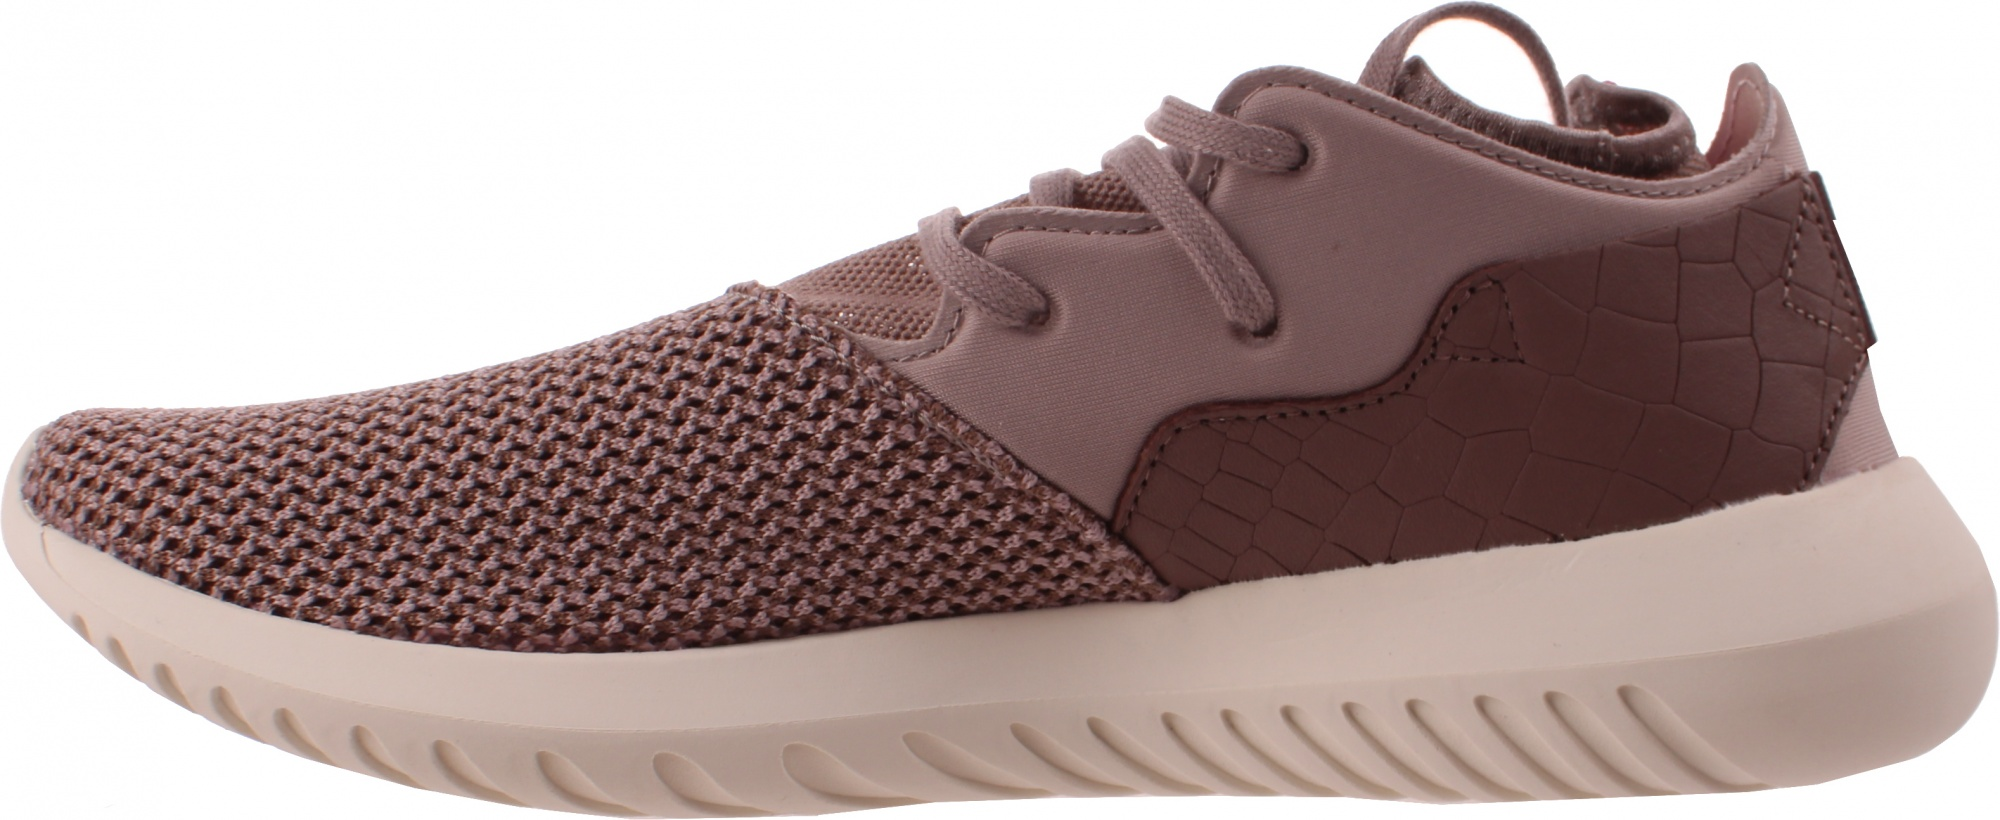 Internet Sport Sneakers Bruin amp;casuals Entrap Adidas Dames Tubular YUXwZq